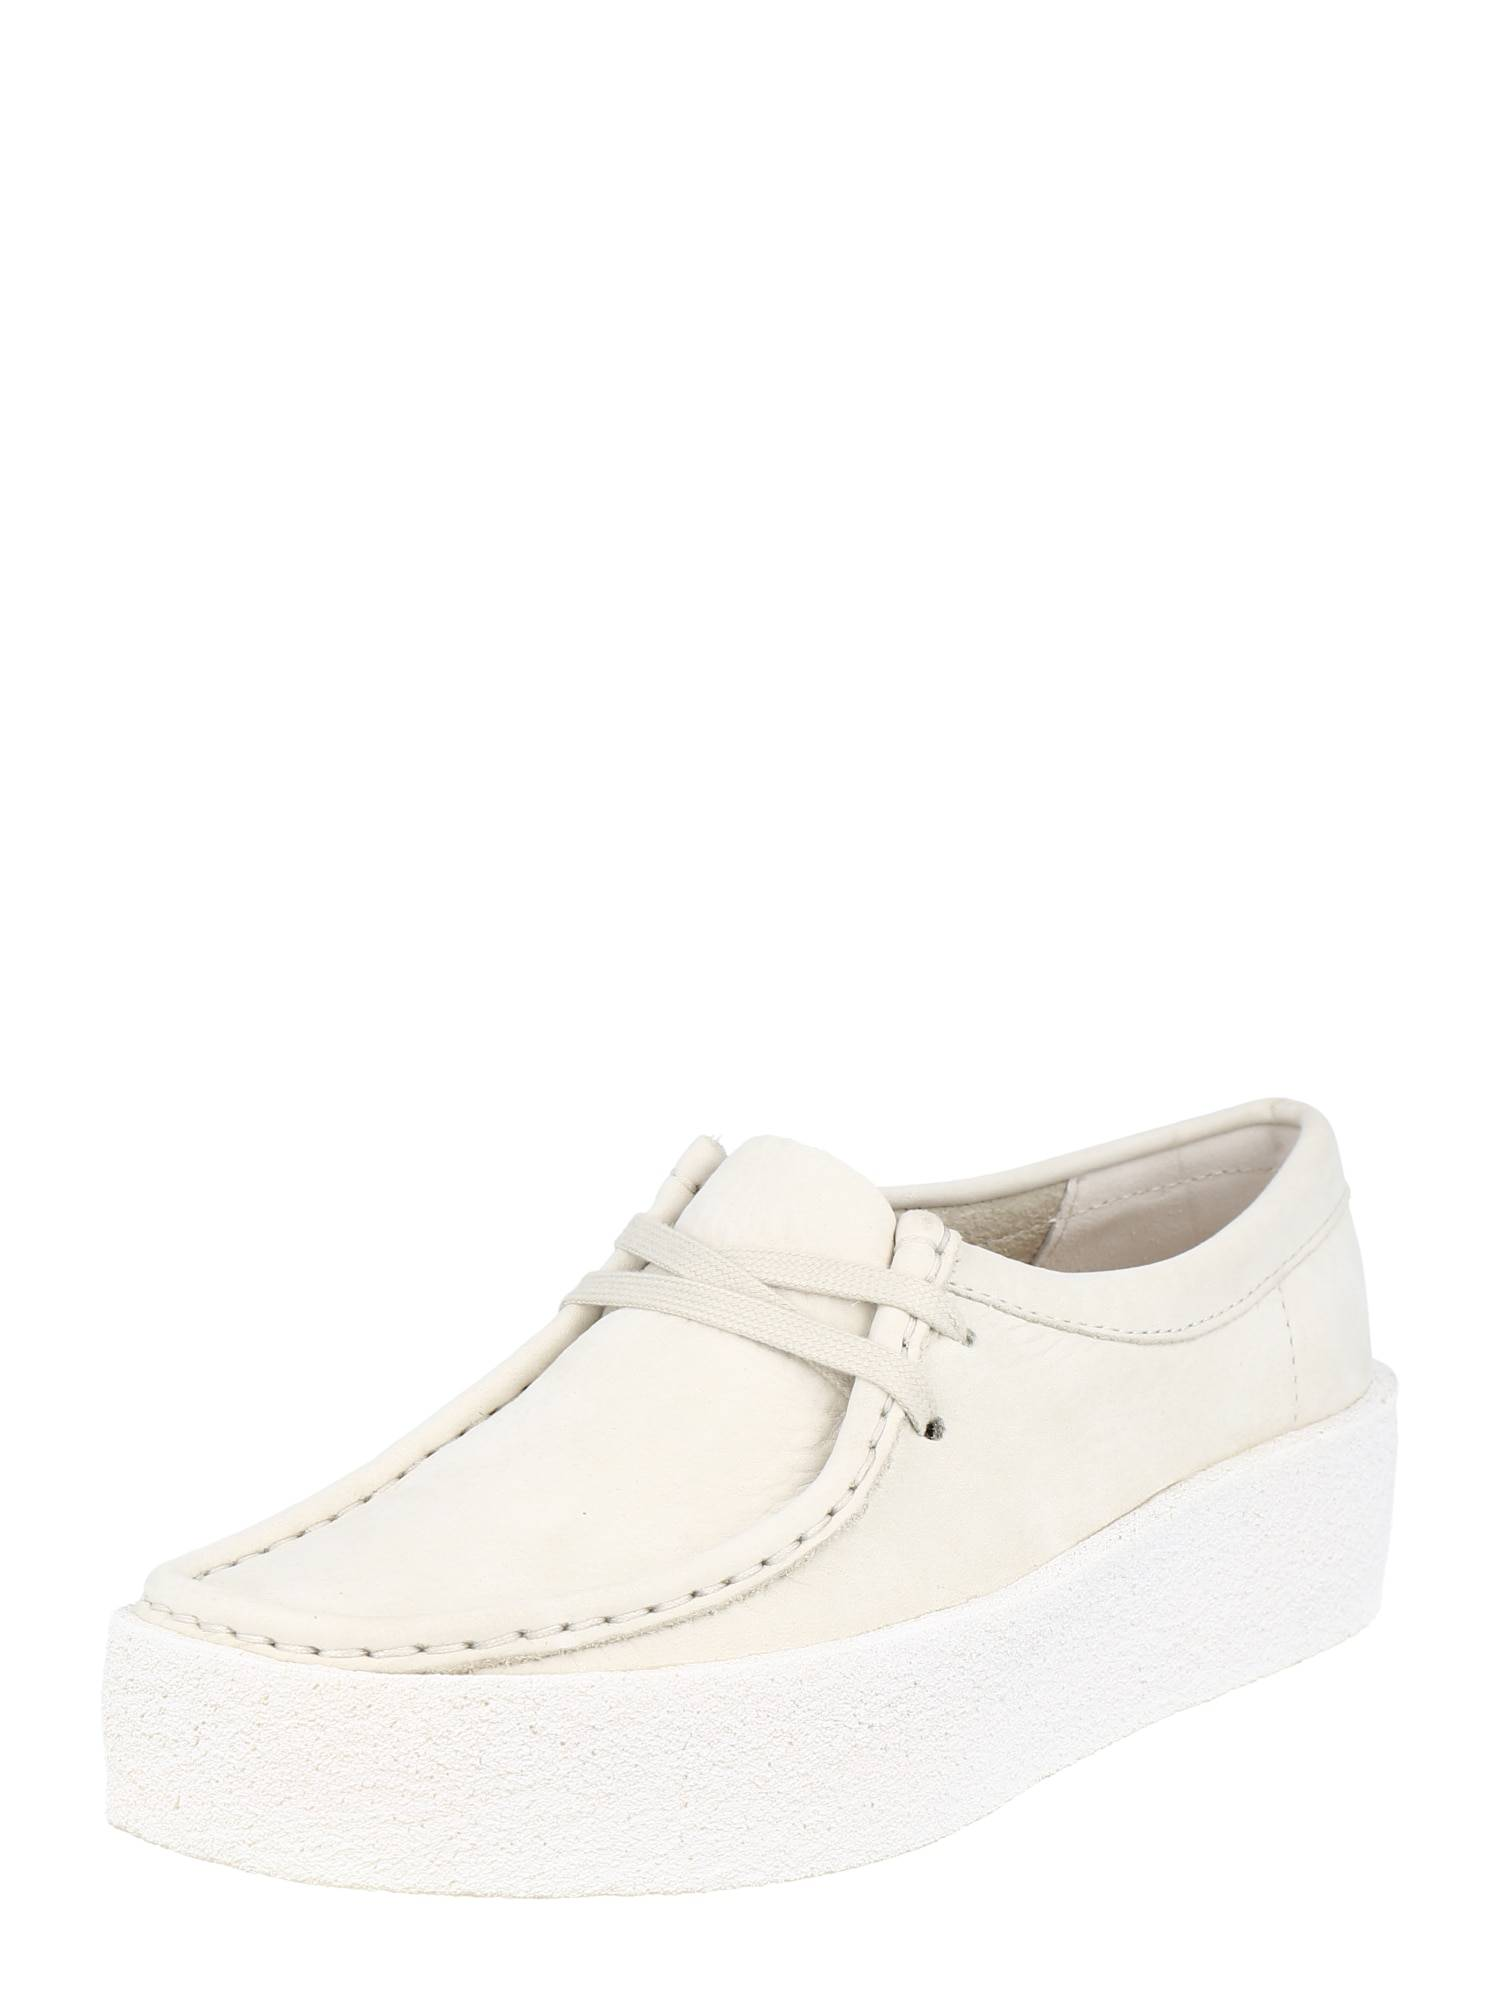 Clarks Originals Chaussure à lacets 'Wallabee Cup'  - Blanc - Taille: 5.5 - female